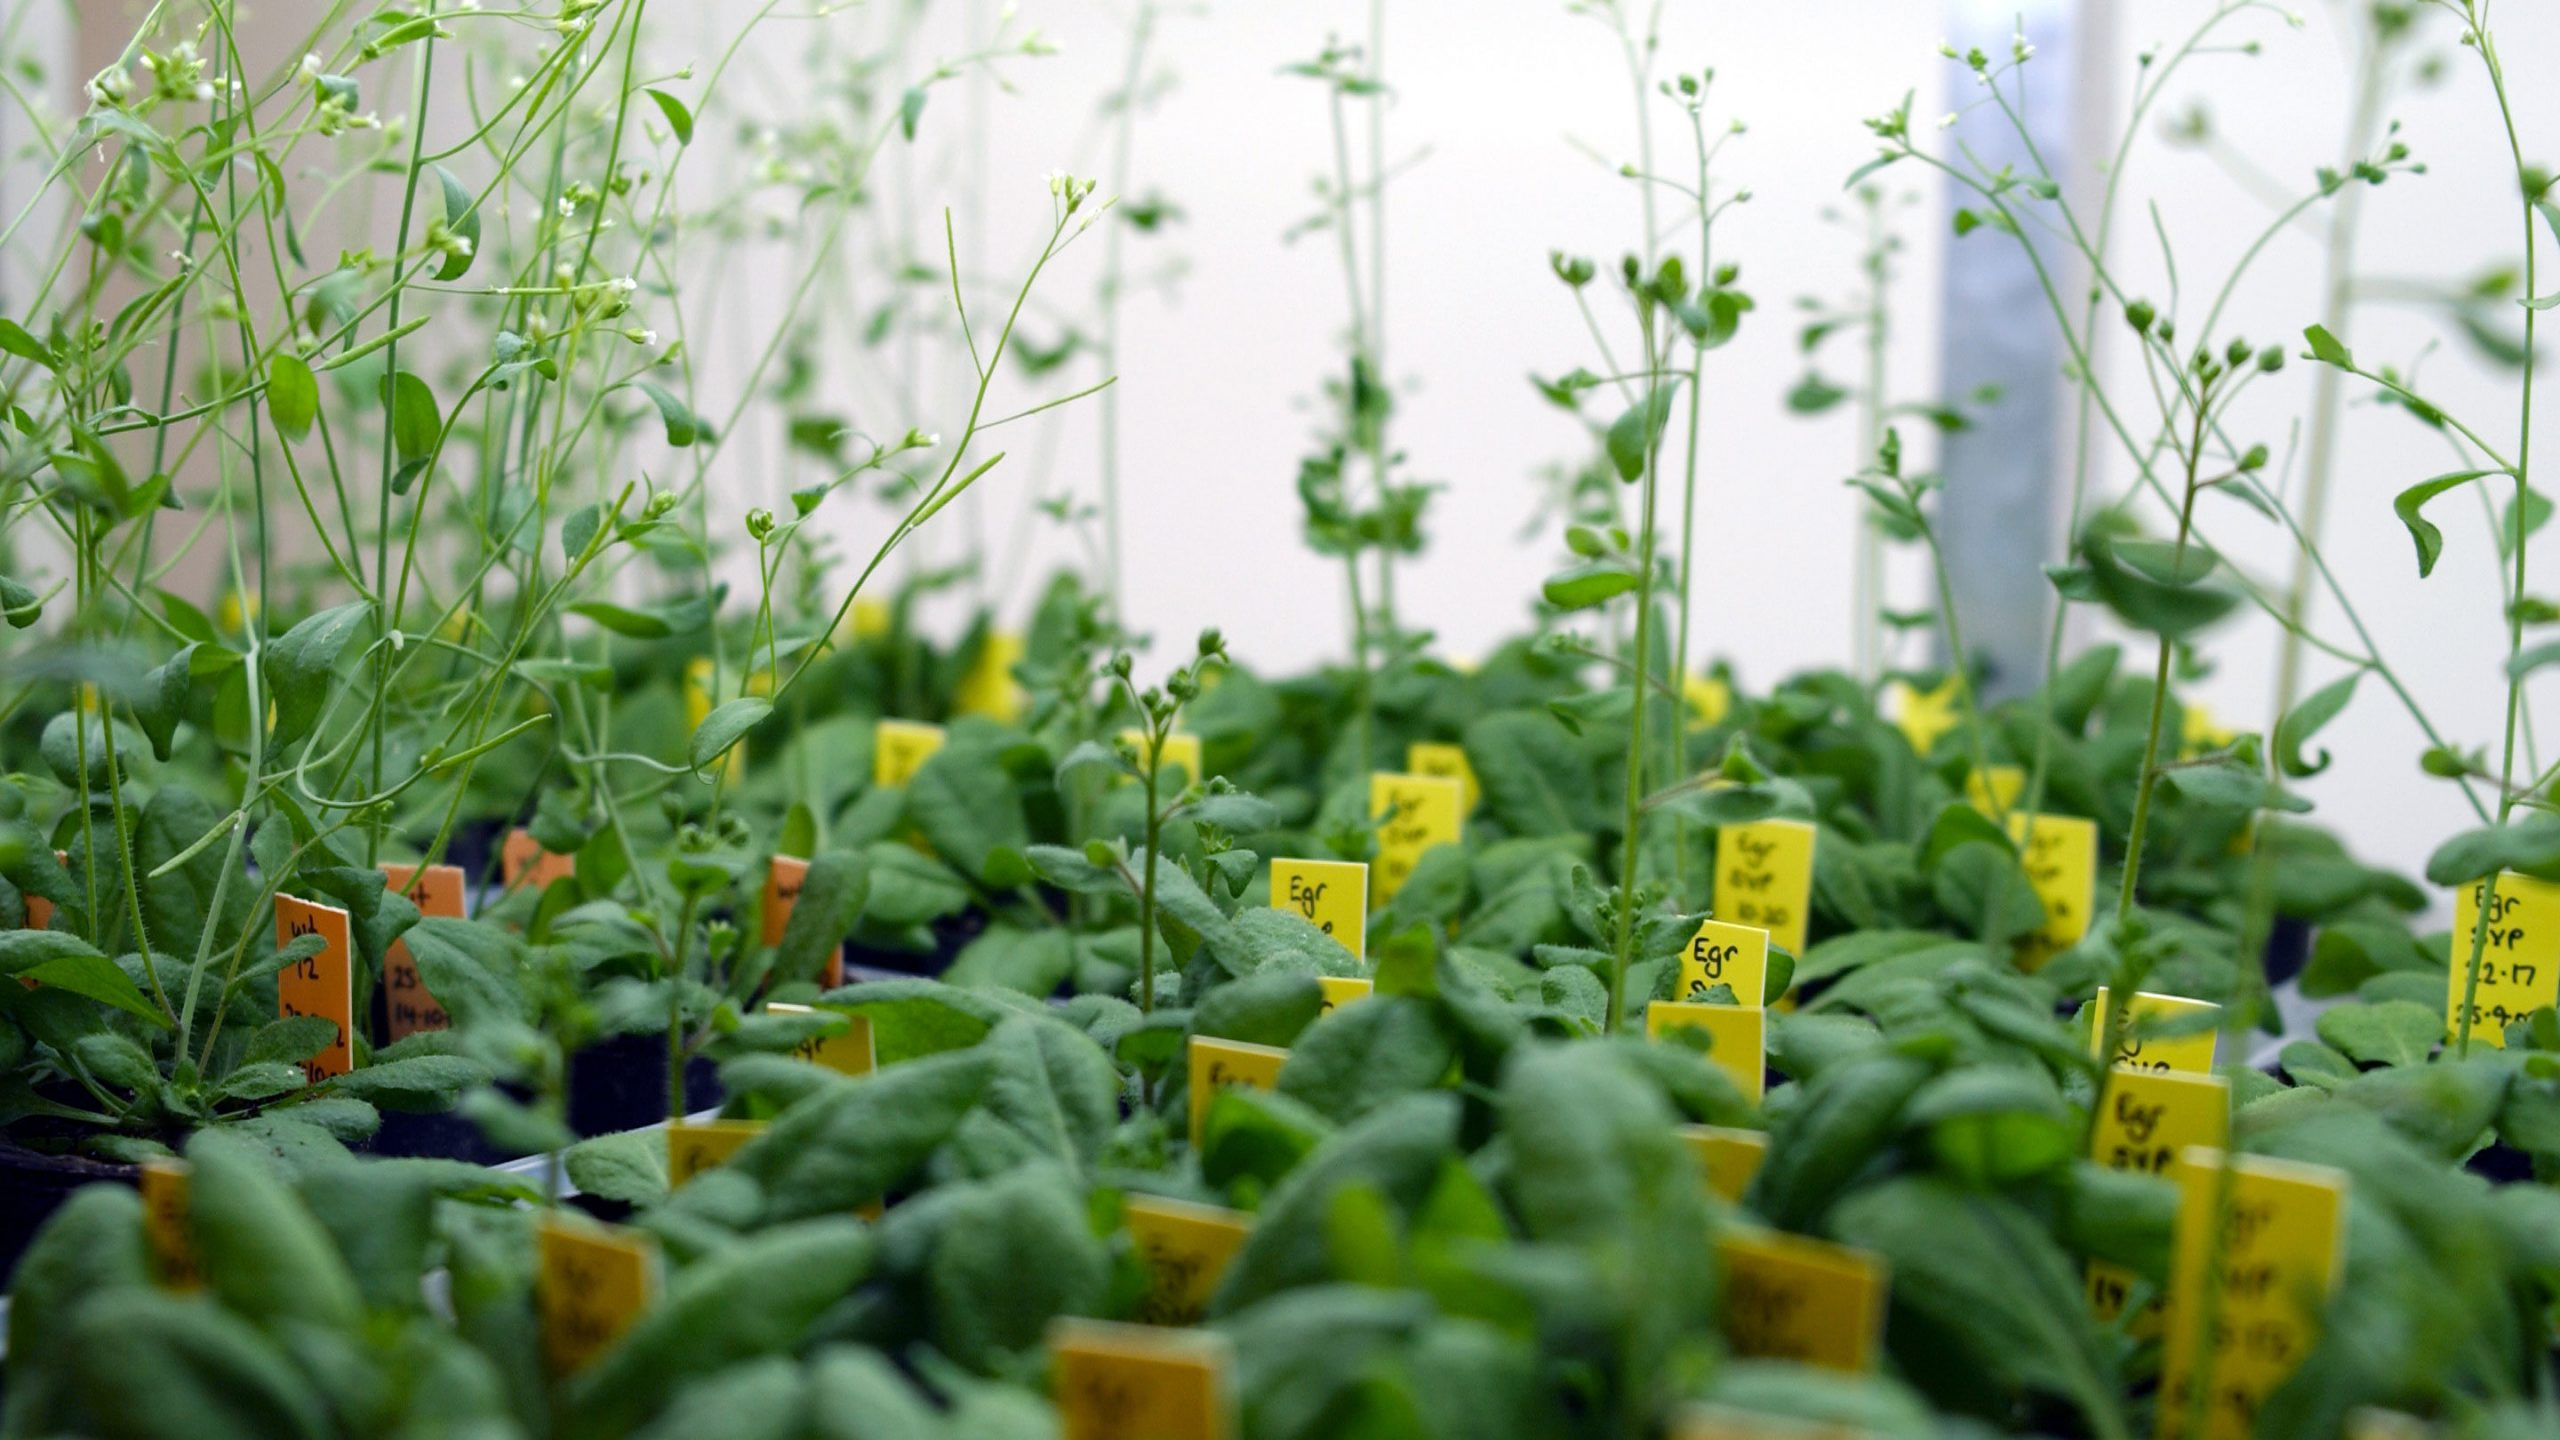 This New Toolset Can Allow Scientists To Genetically Modify Plants Easily